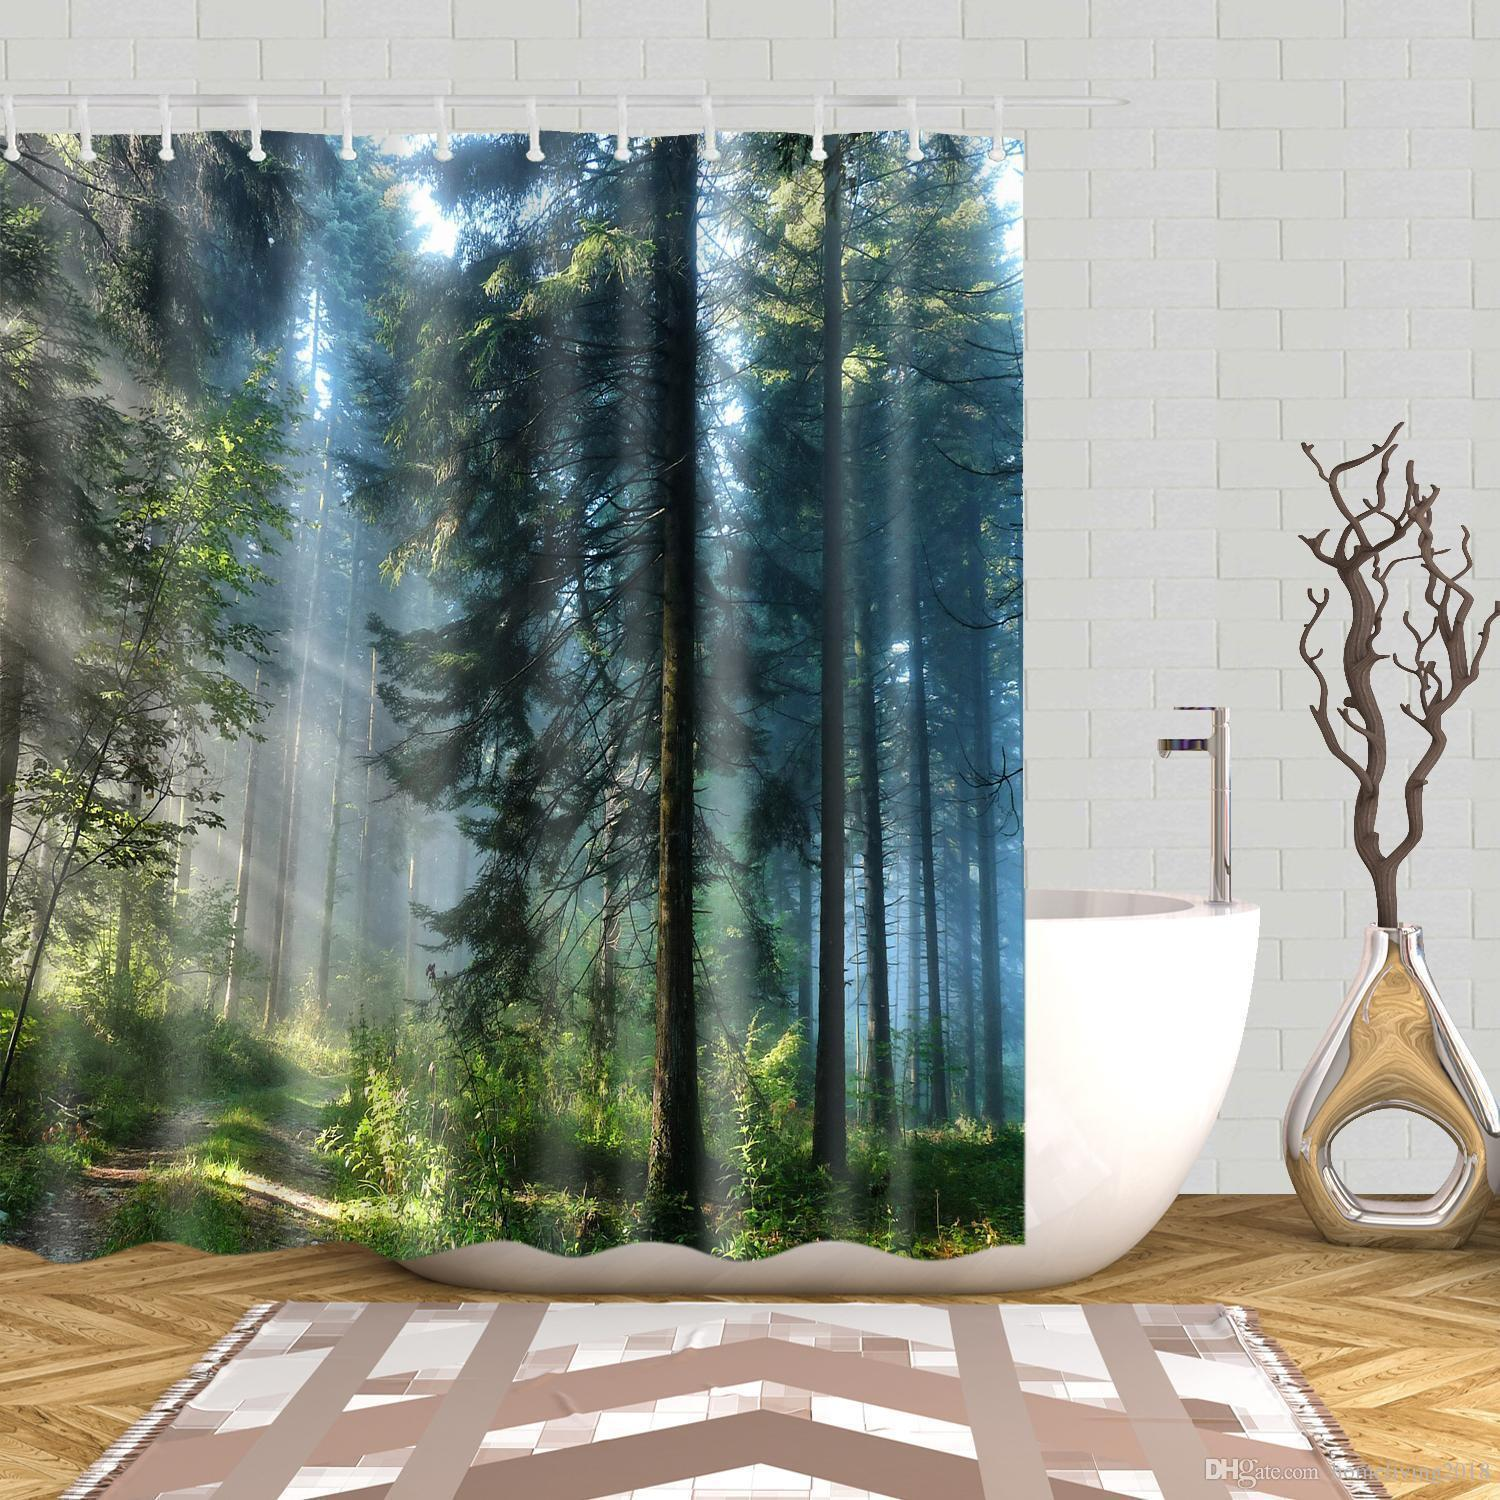 2019 Shower Curtain With Hooks Waterproof Mildewproof Bath Curtain From Dayao01 23 18 Dhgate Com